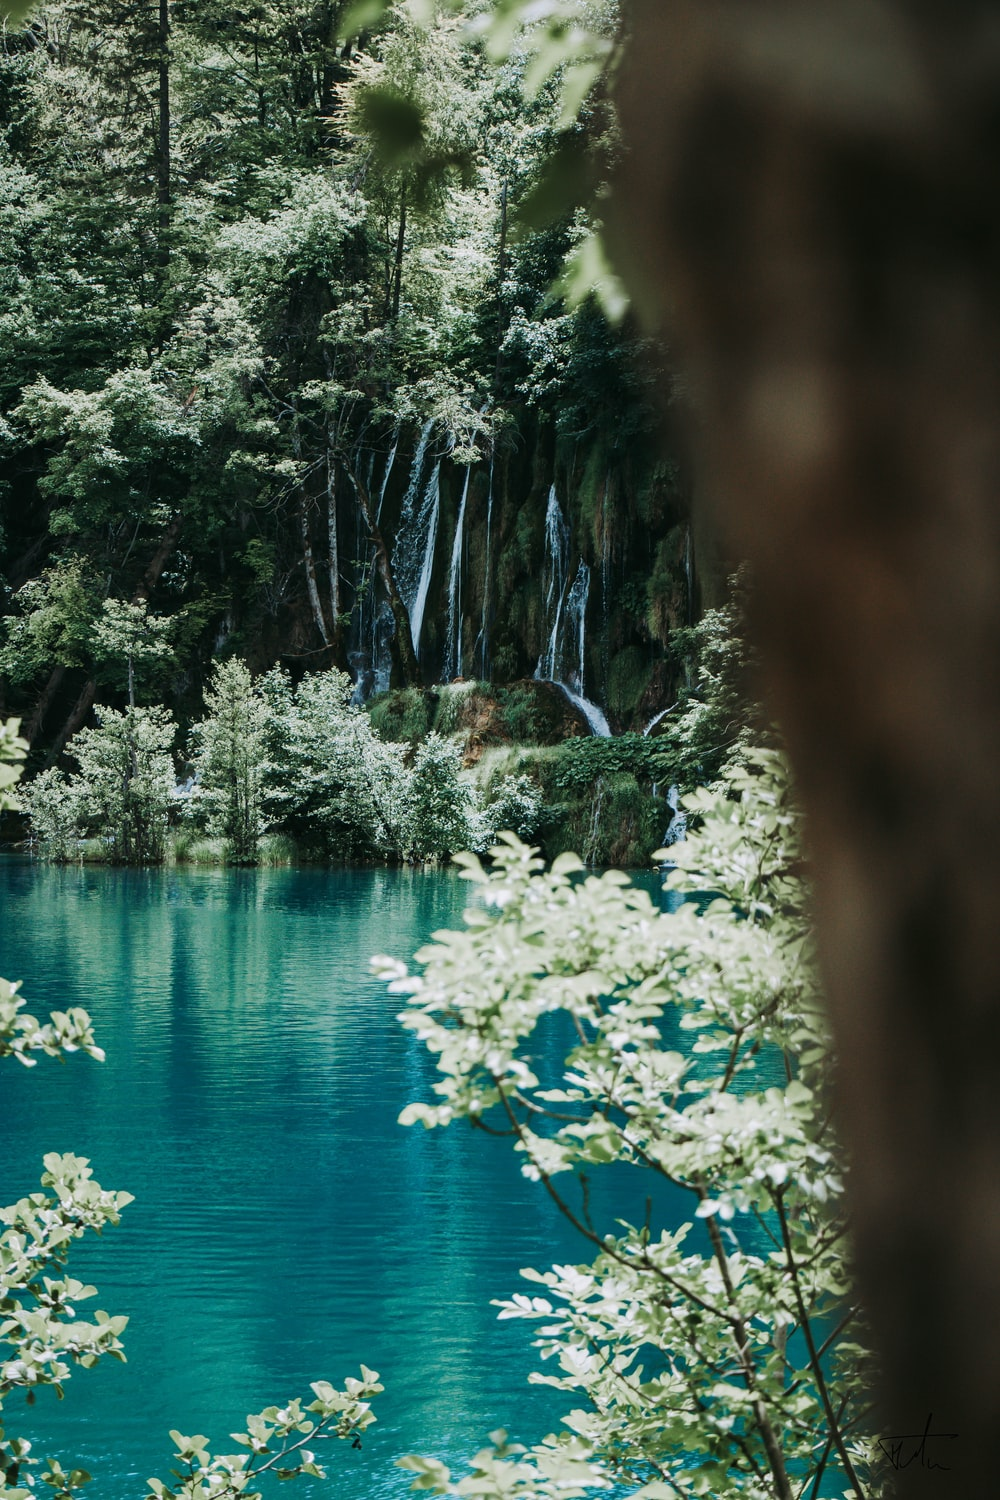 blue lake surrounded by green trees during daytime